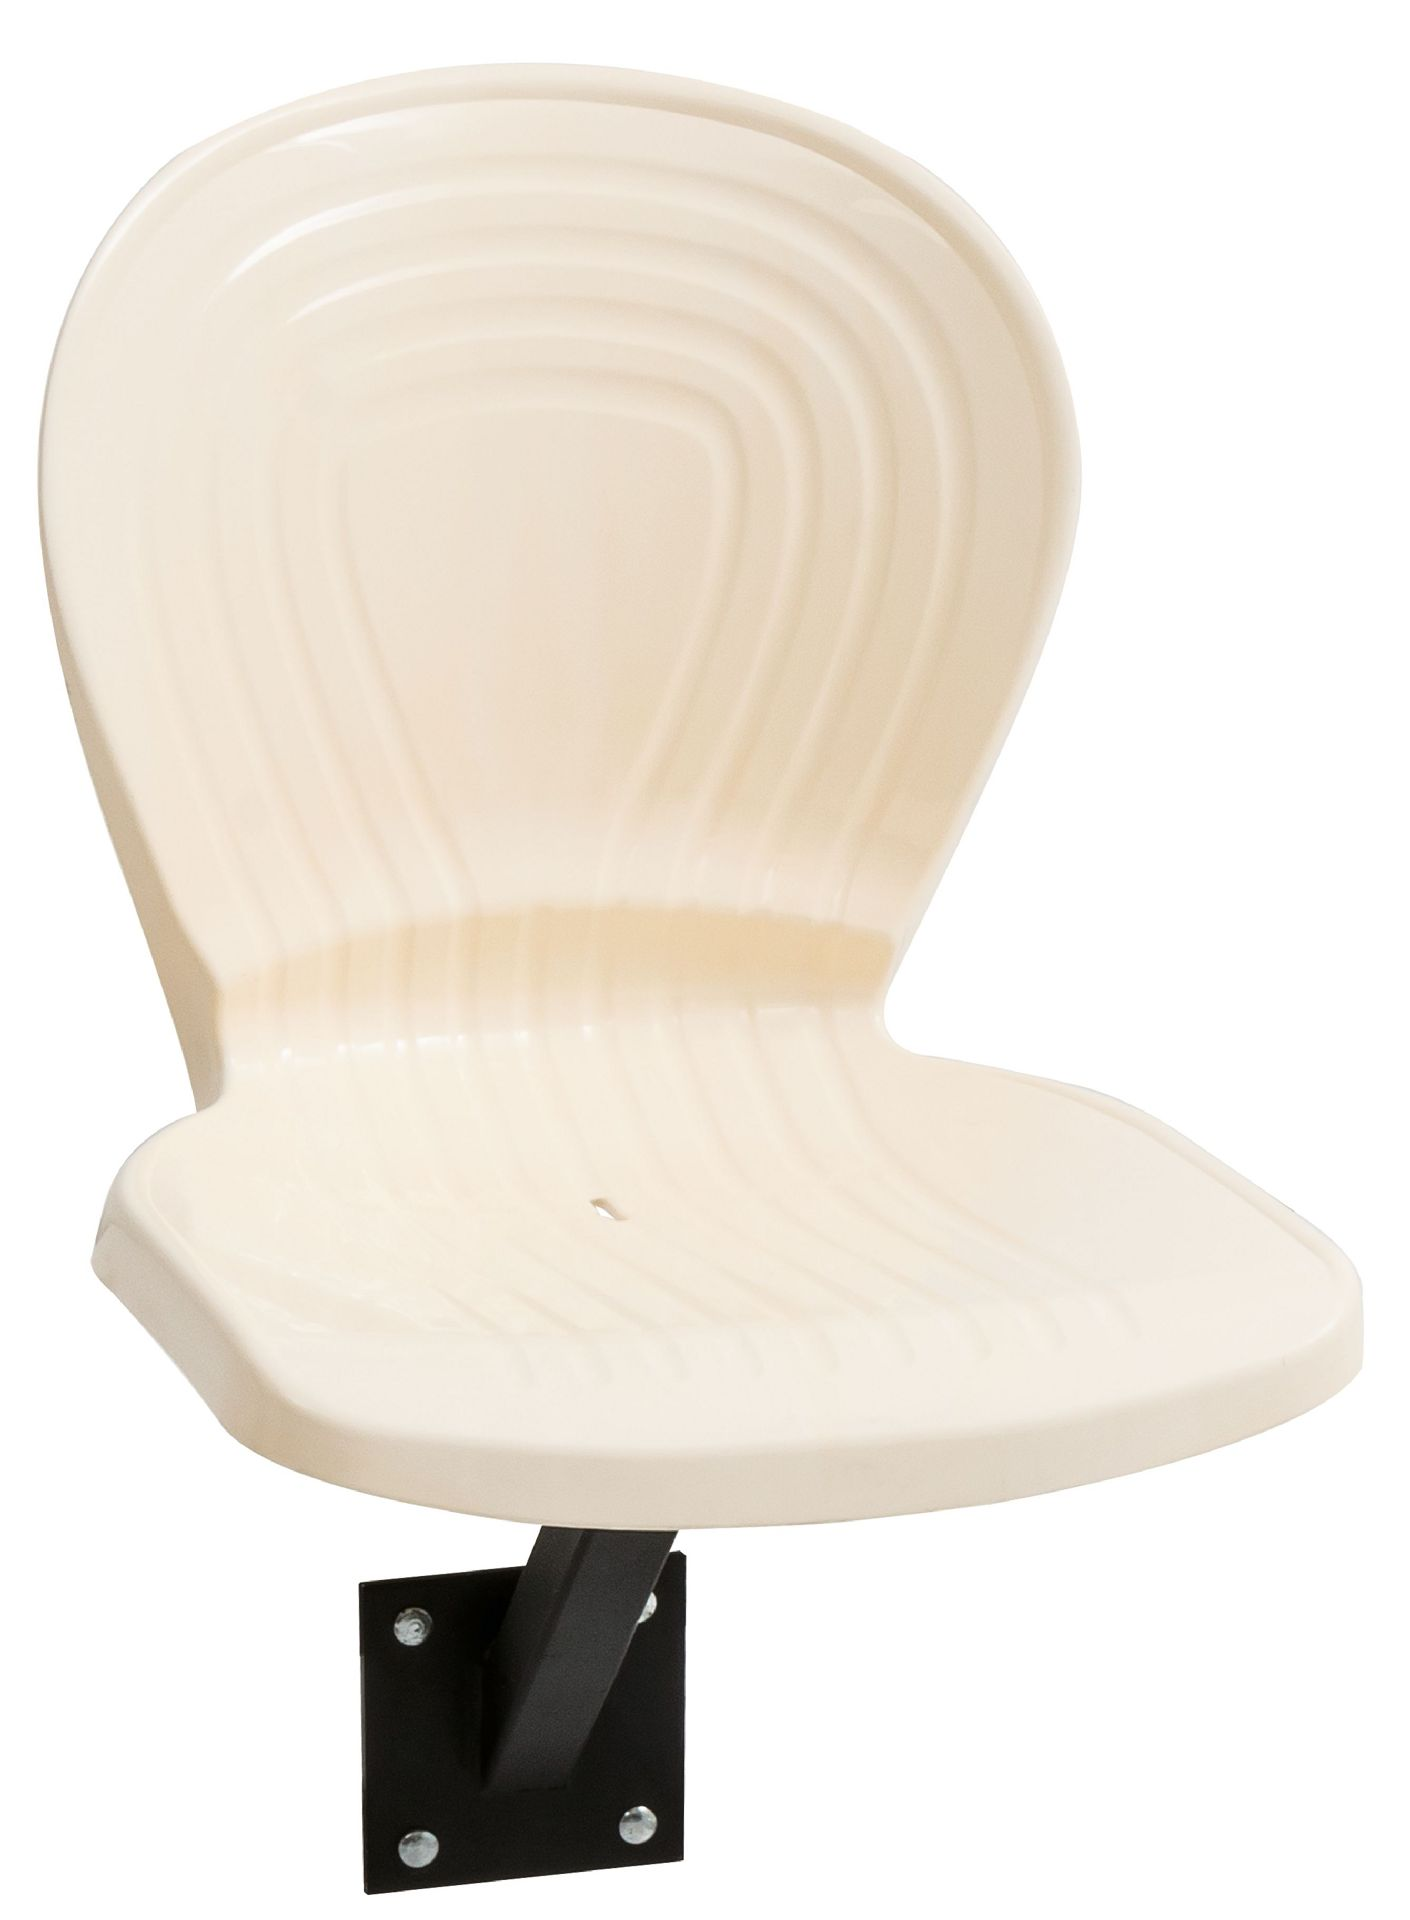 mine_backrest_monoblock_copolymer_pp_stadium_chair_seatorium_12